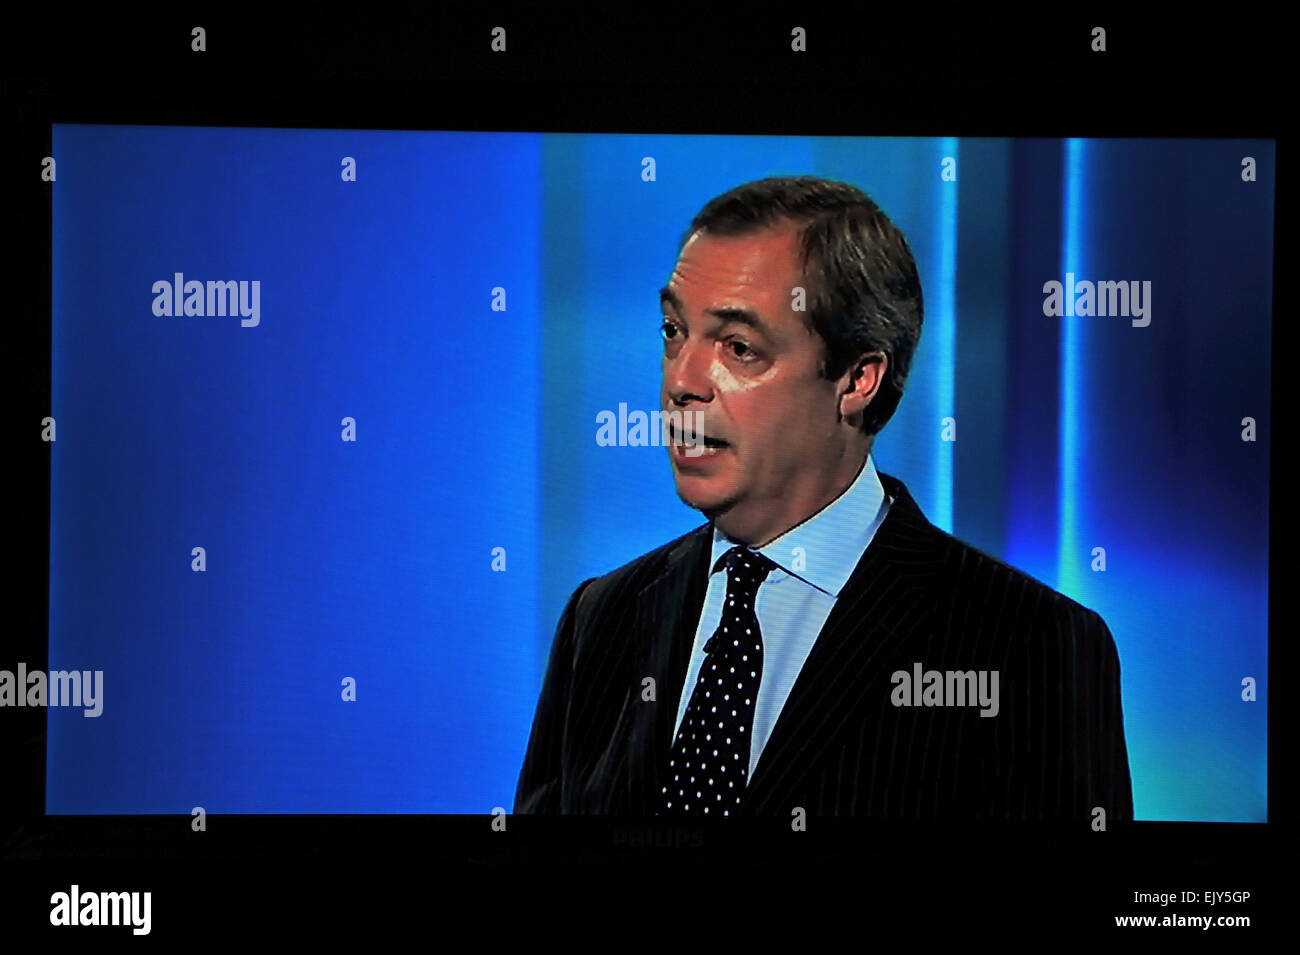 Nigel Farage the leader of UKIP participates in the 7-way UK election leaders debate on live TV. - Stock Image